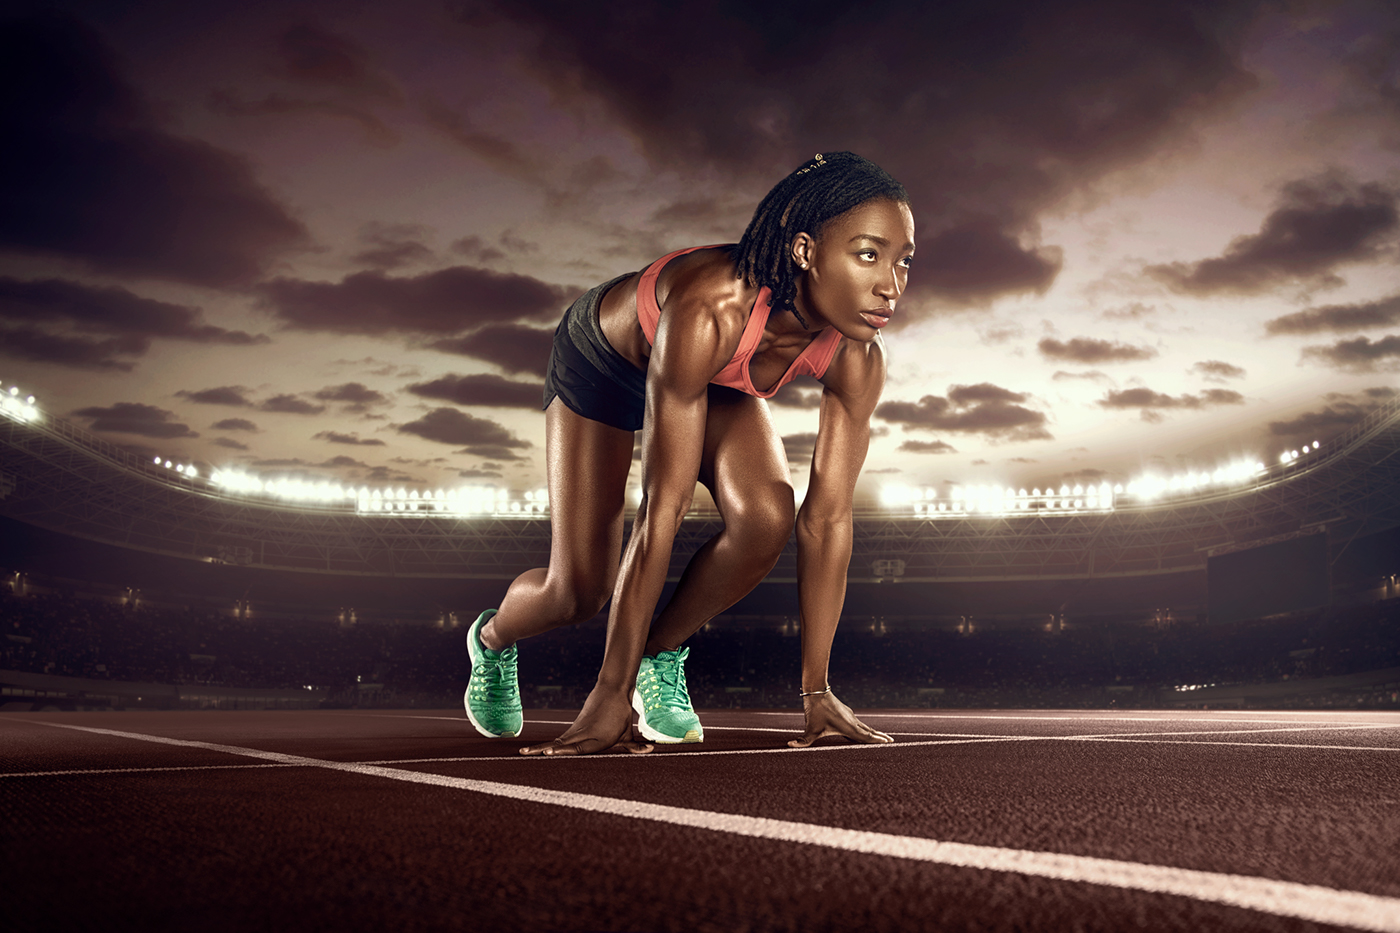 coloring colorgrading visual sports photomanipulation compositing campaign